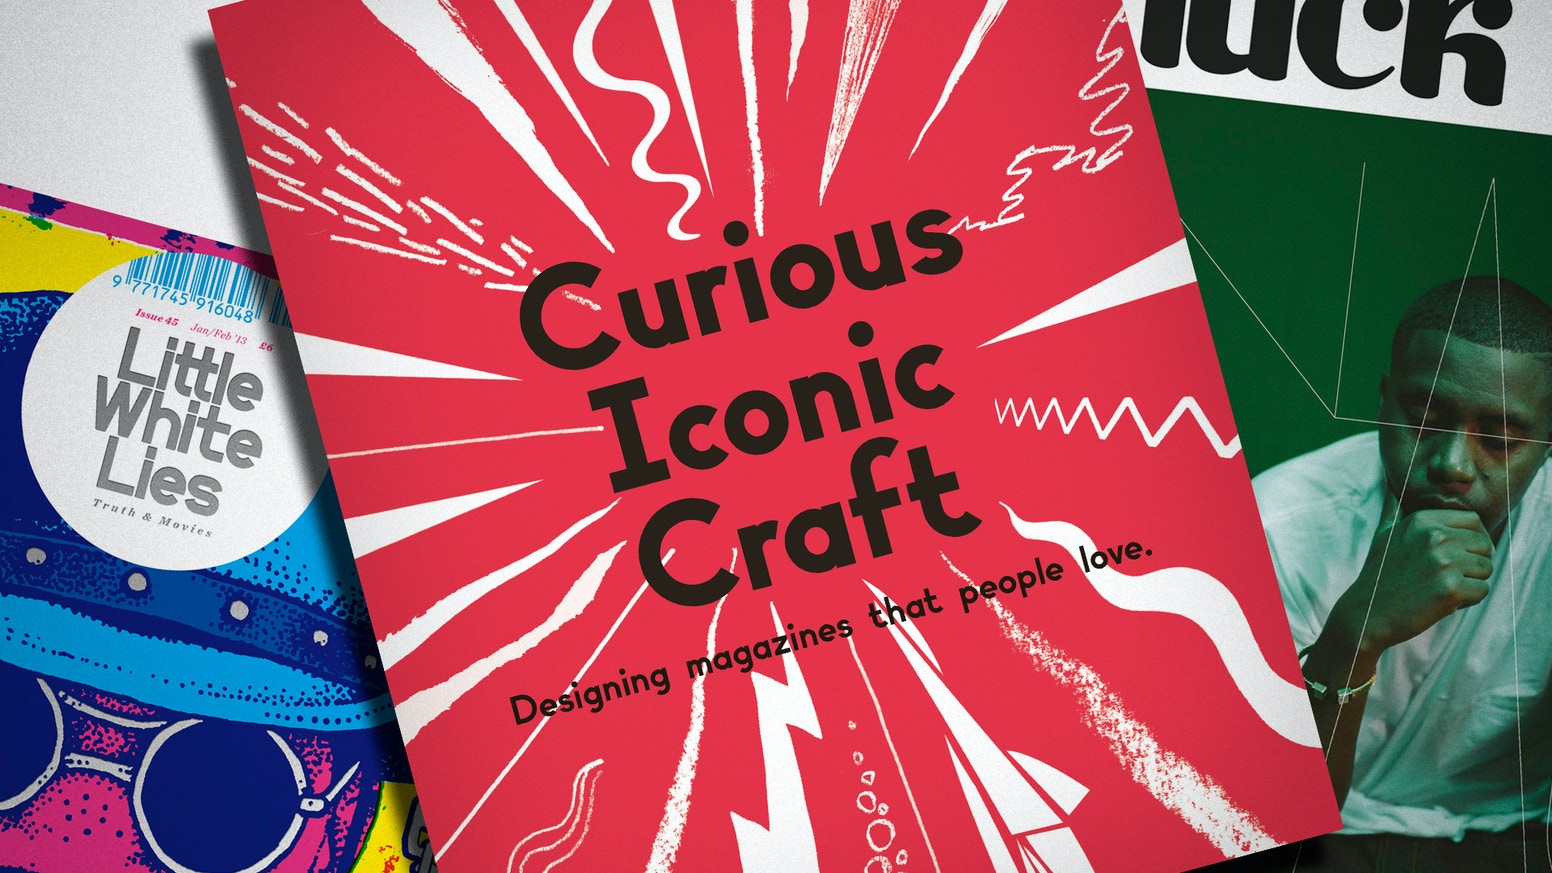 Curious Iconic Craft Designing Magazines That People Love By Human